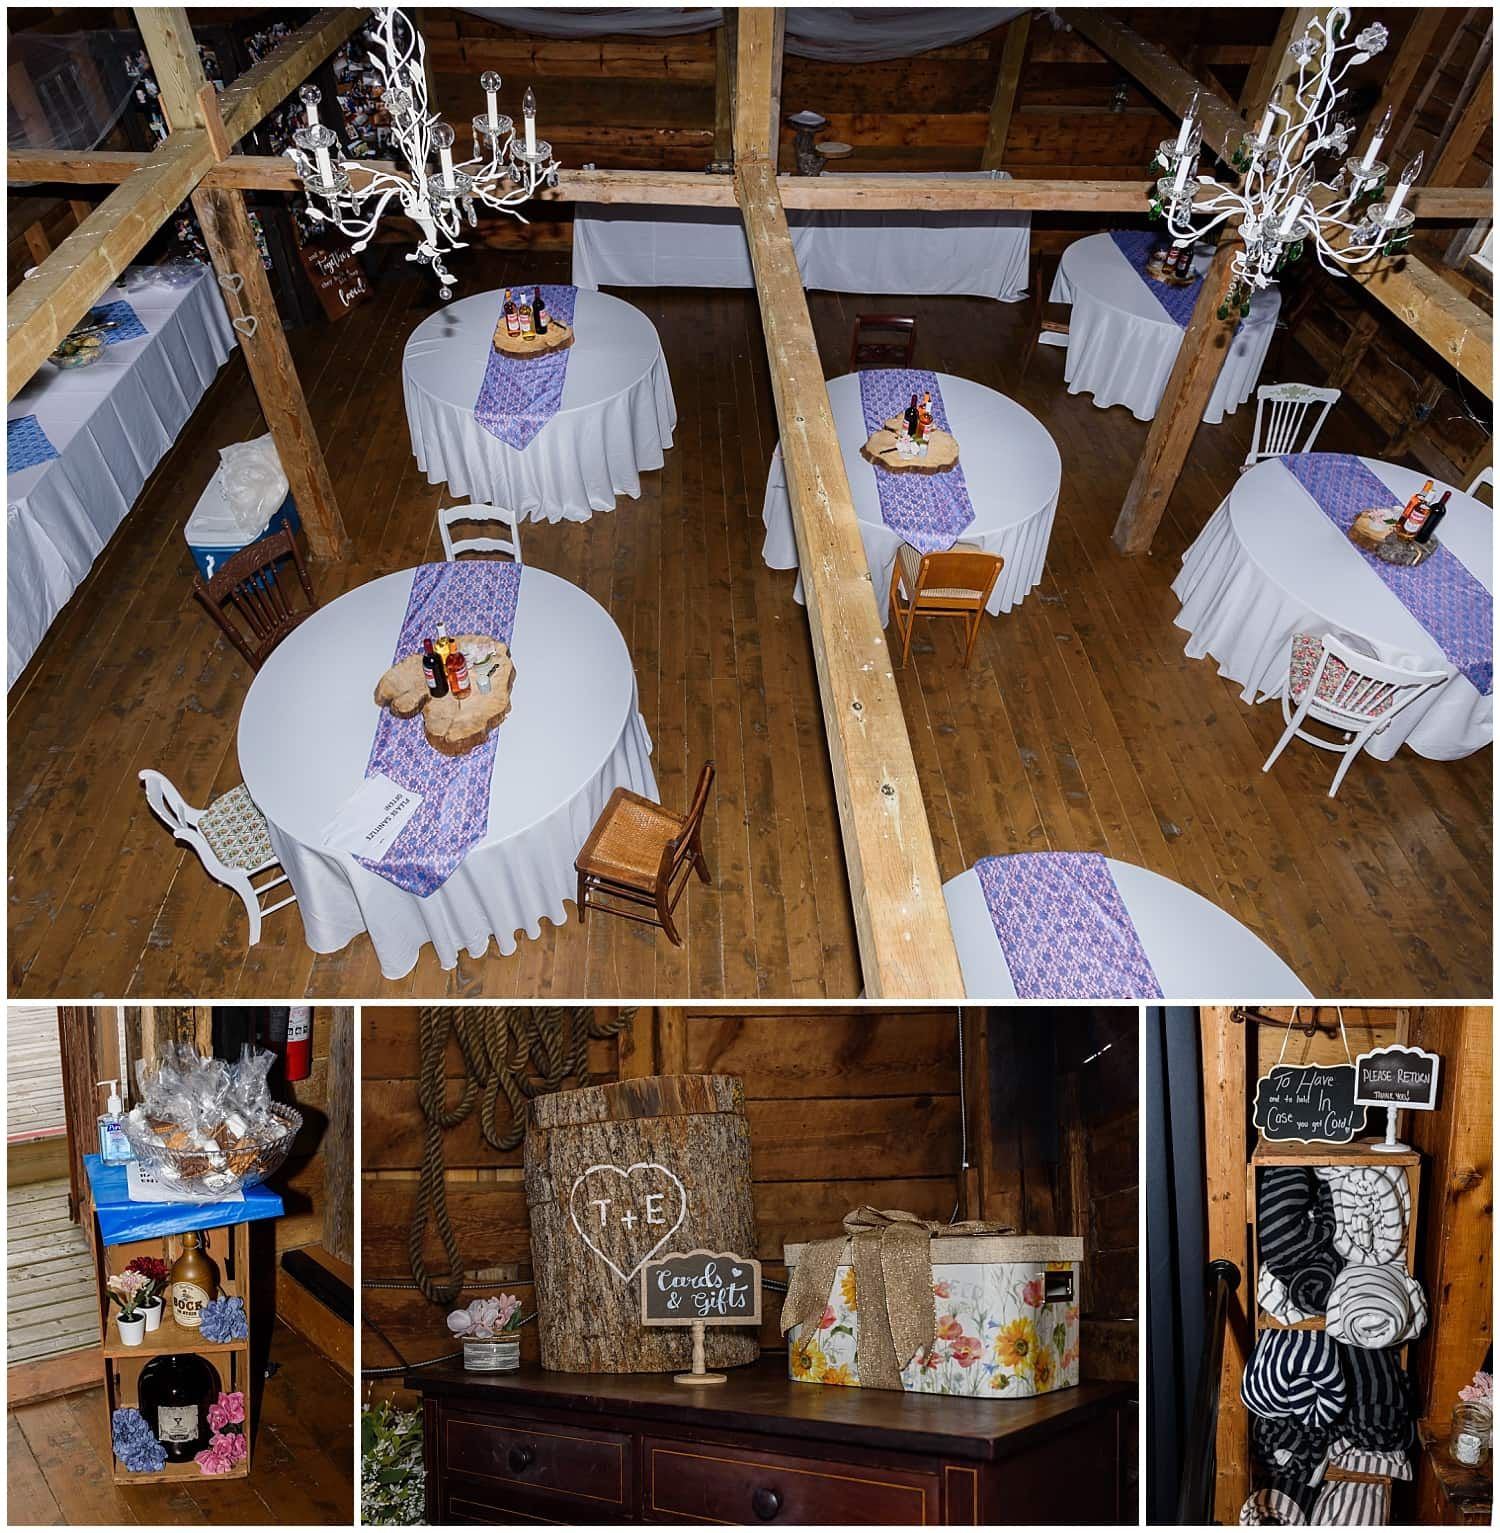 The wedding reception set up at the Barn at Sadie Belle Farm in Hantsport NS.